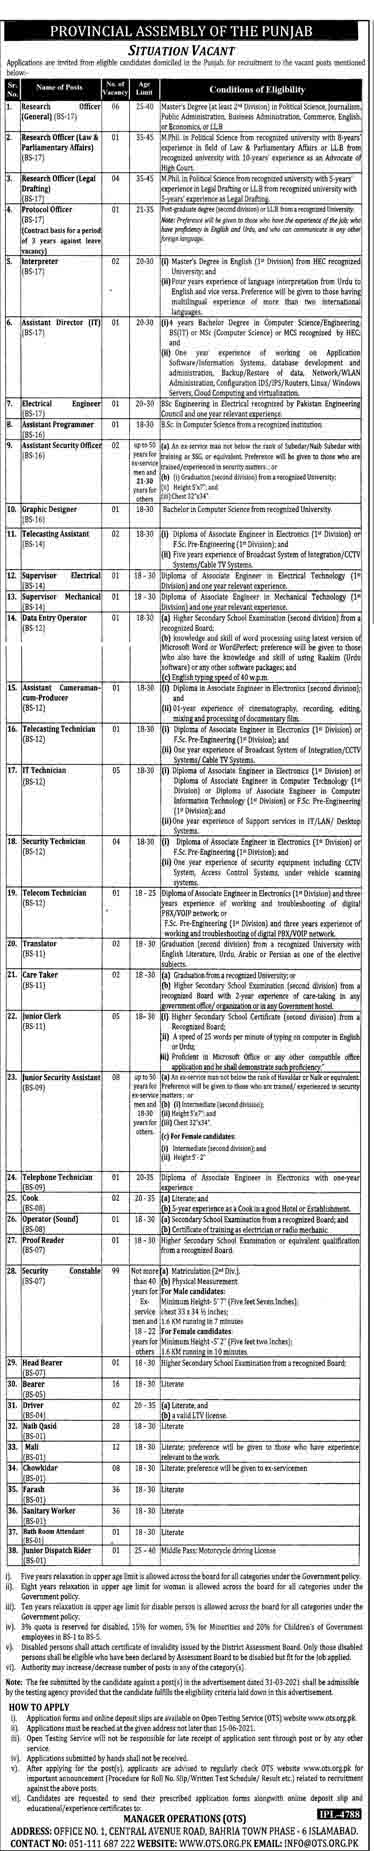 Provincial Assembly of the Punjab Jobs May 2021 (300 Posts)